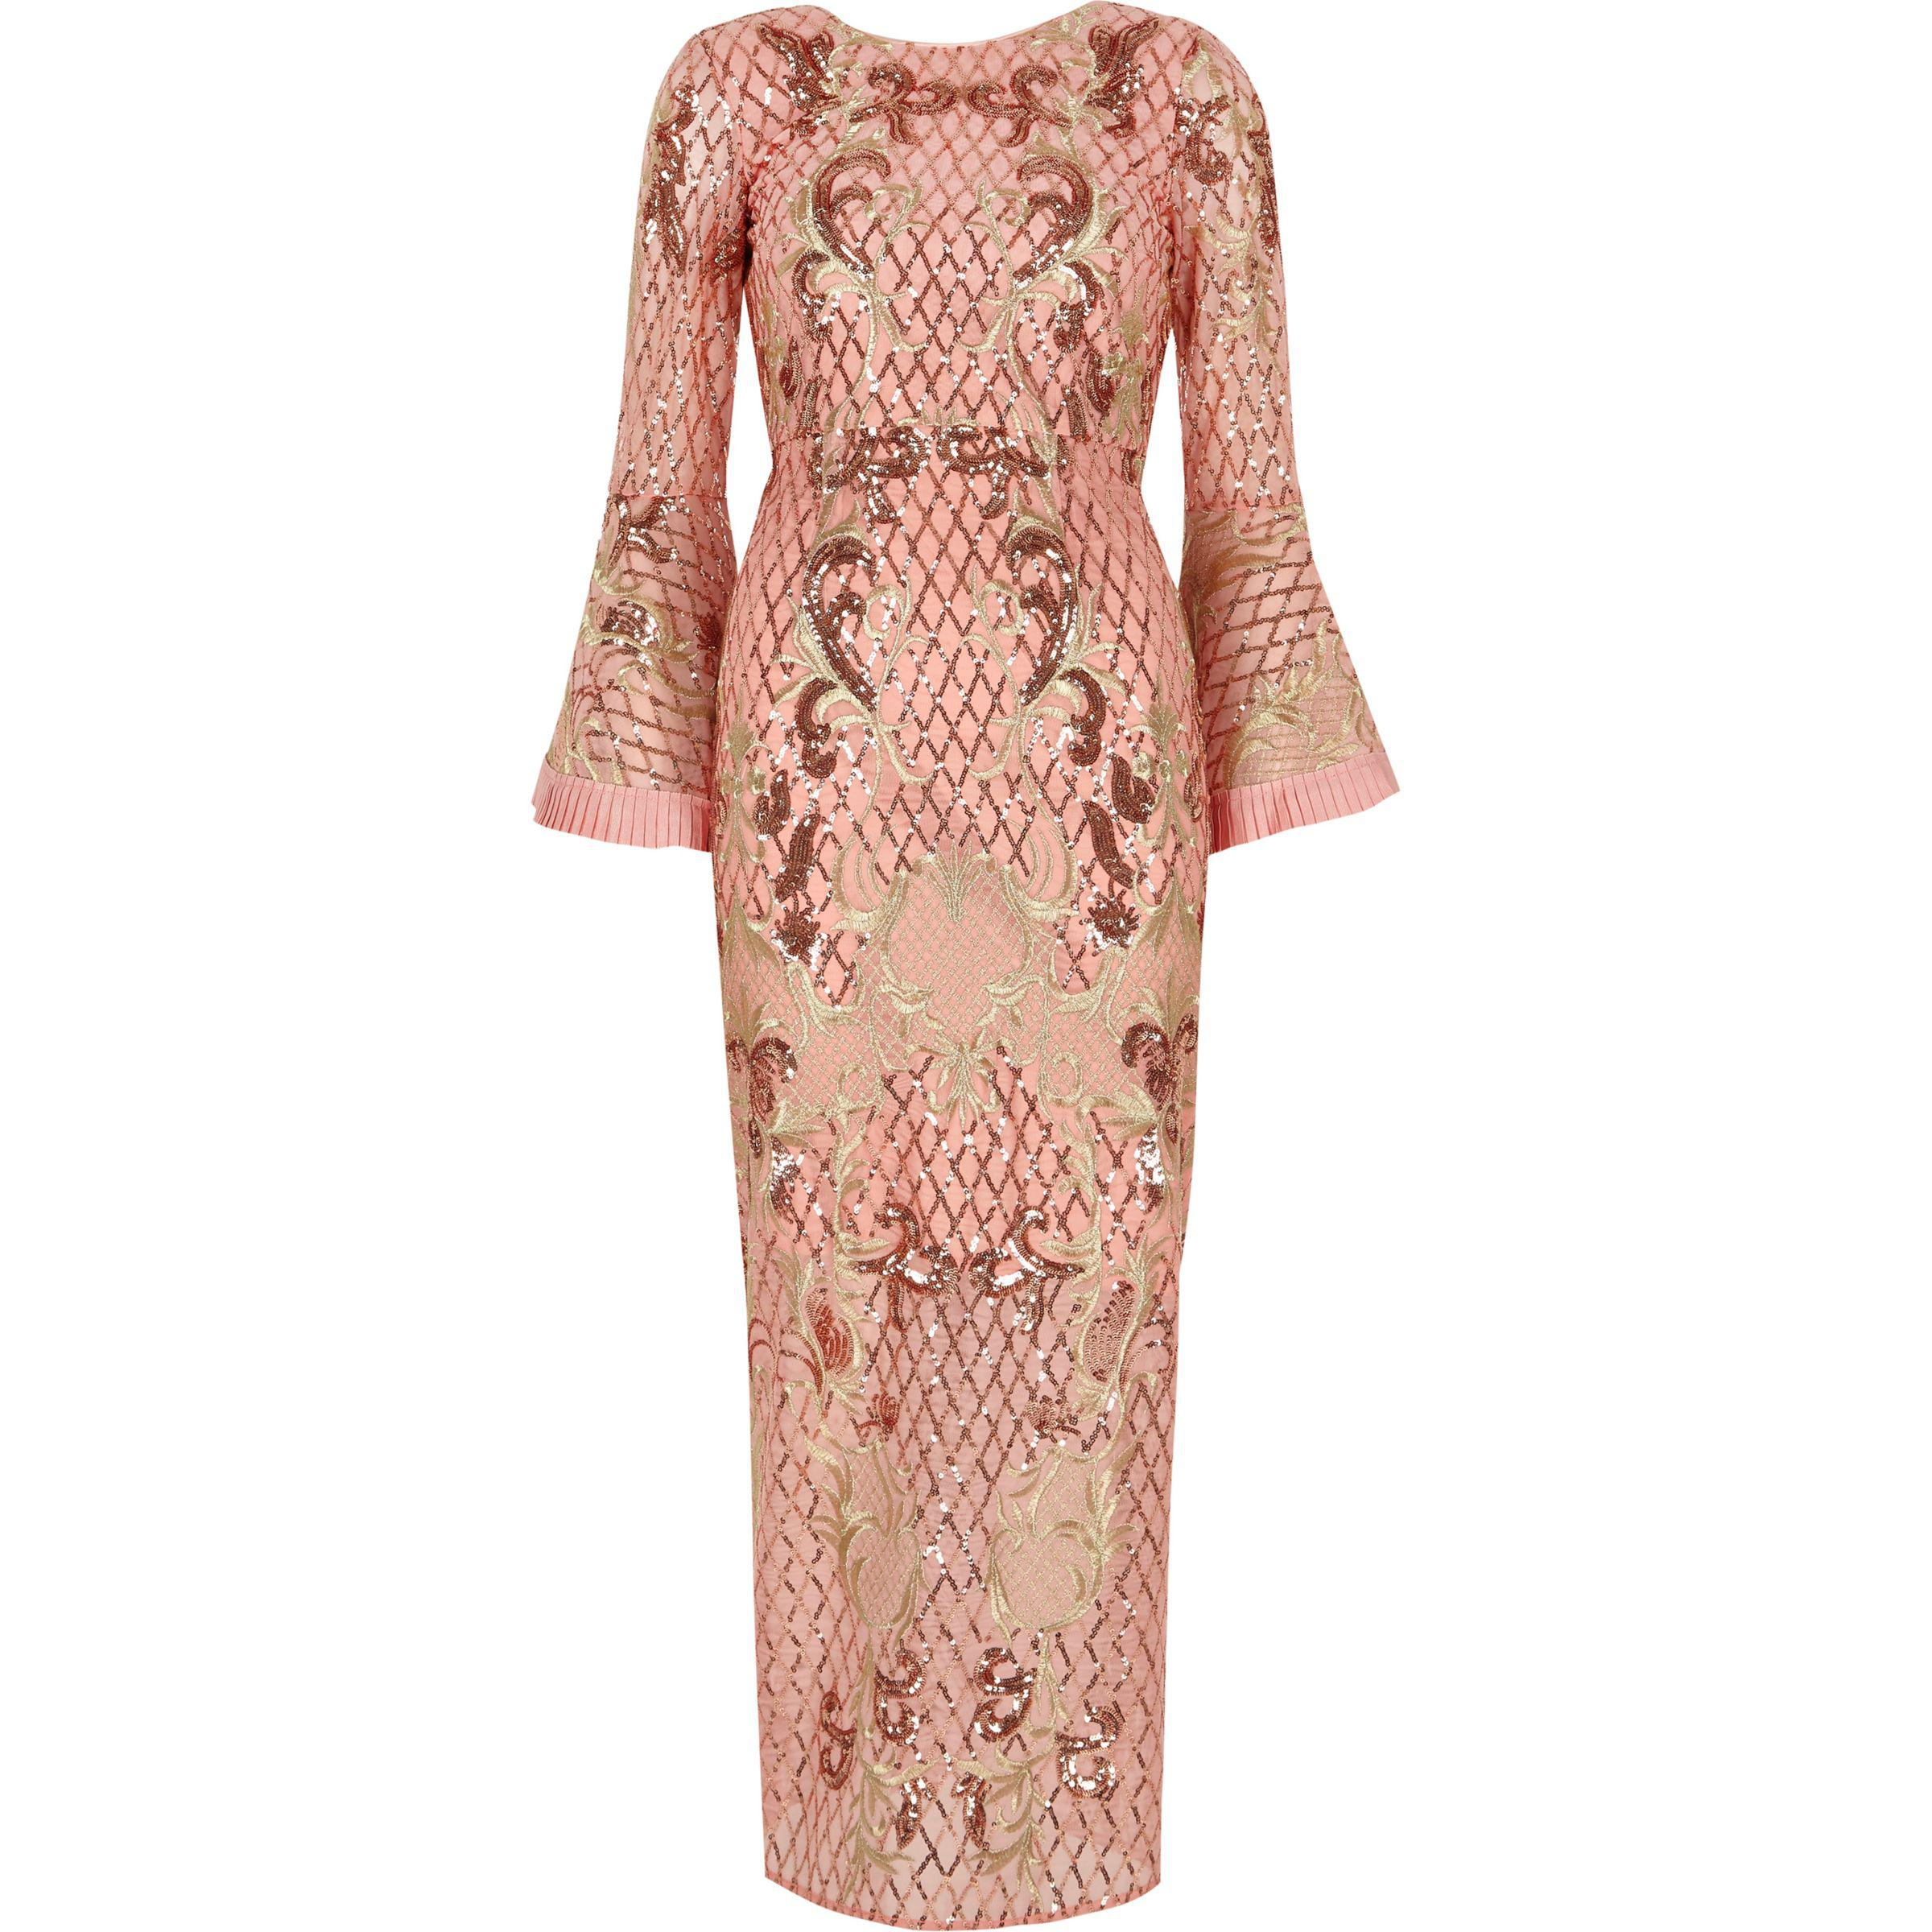 189c6dd7d7 River Island Petite Pink Sequin Embellished Maxi Dress in Pink - Lyst